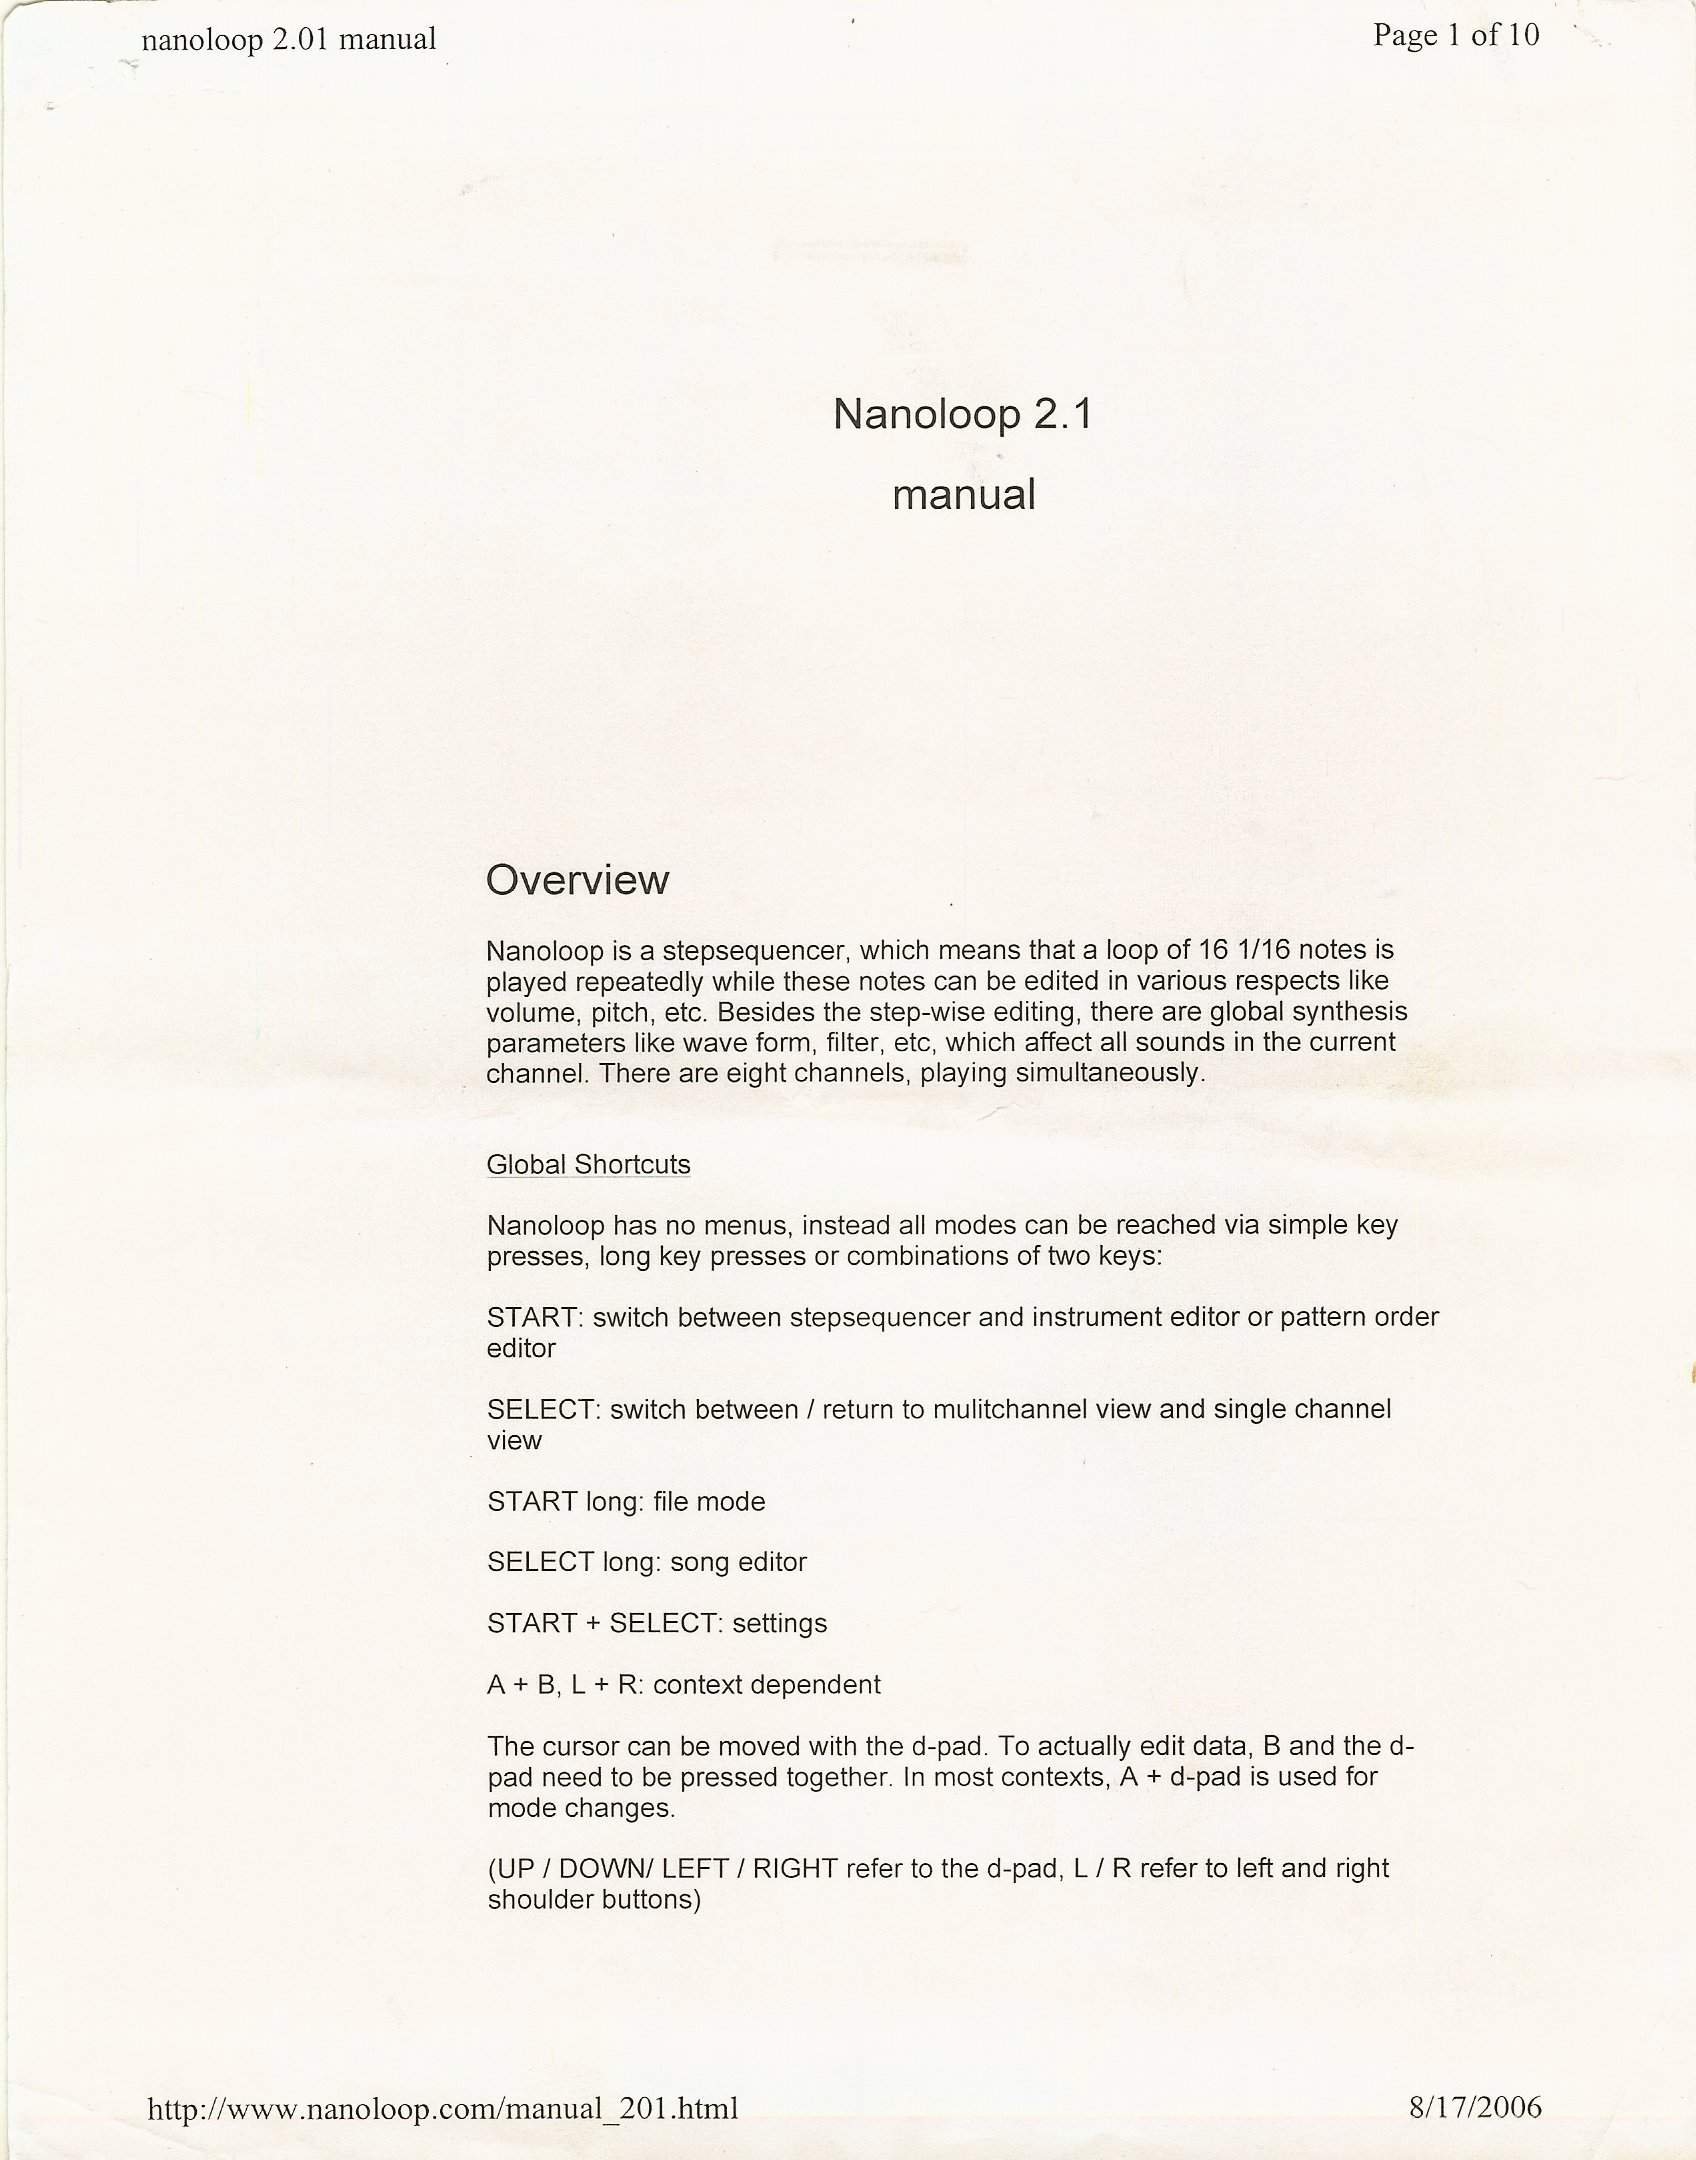 nanoloop_2.01_manual_page1